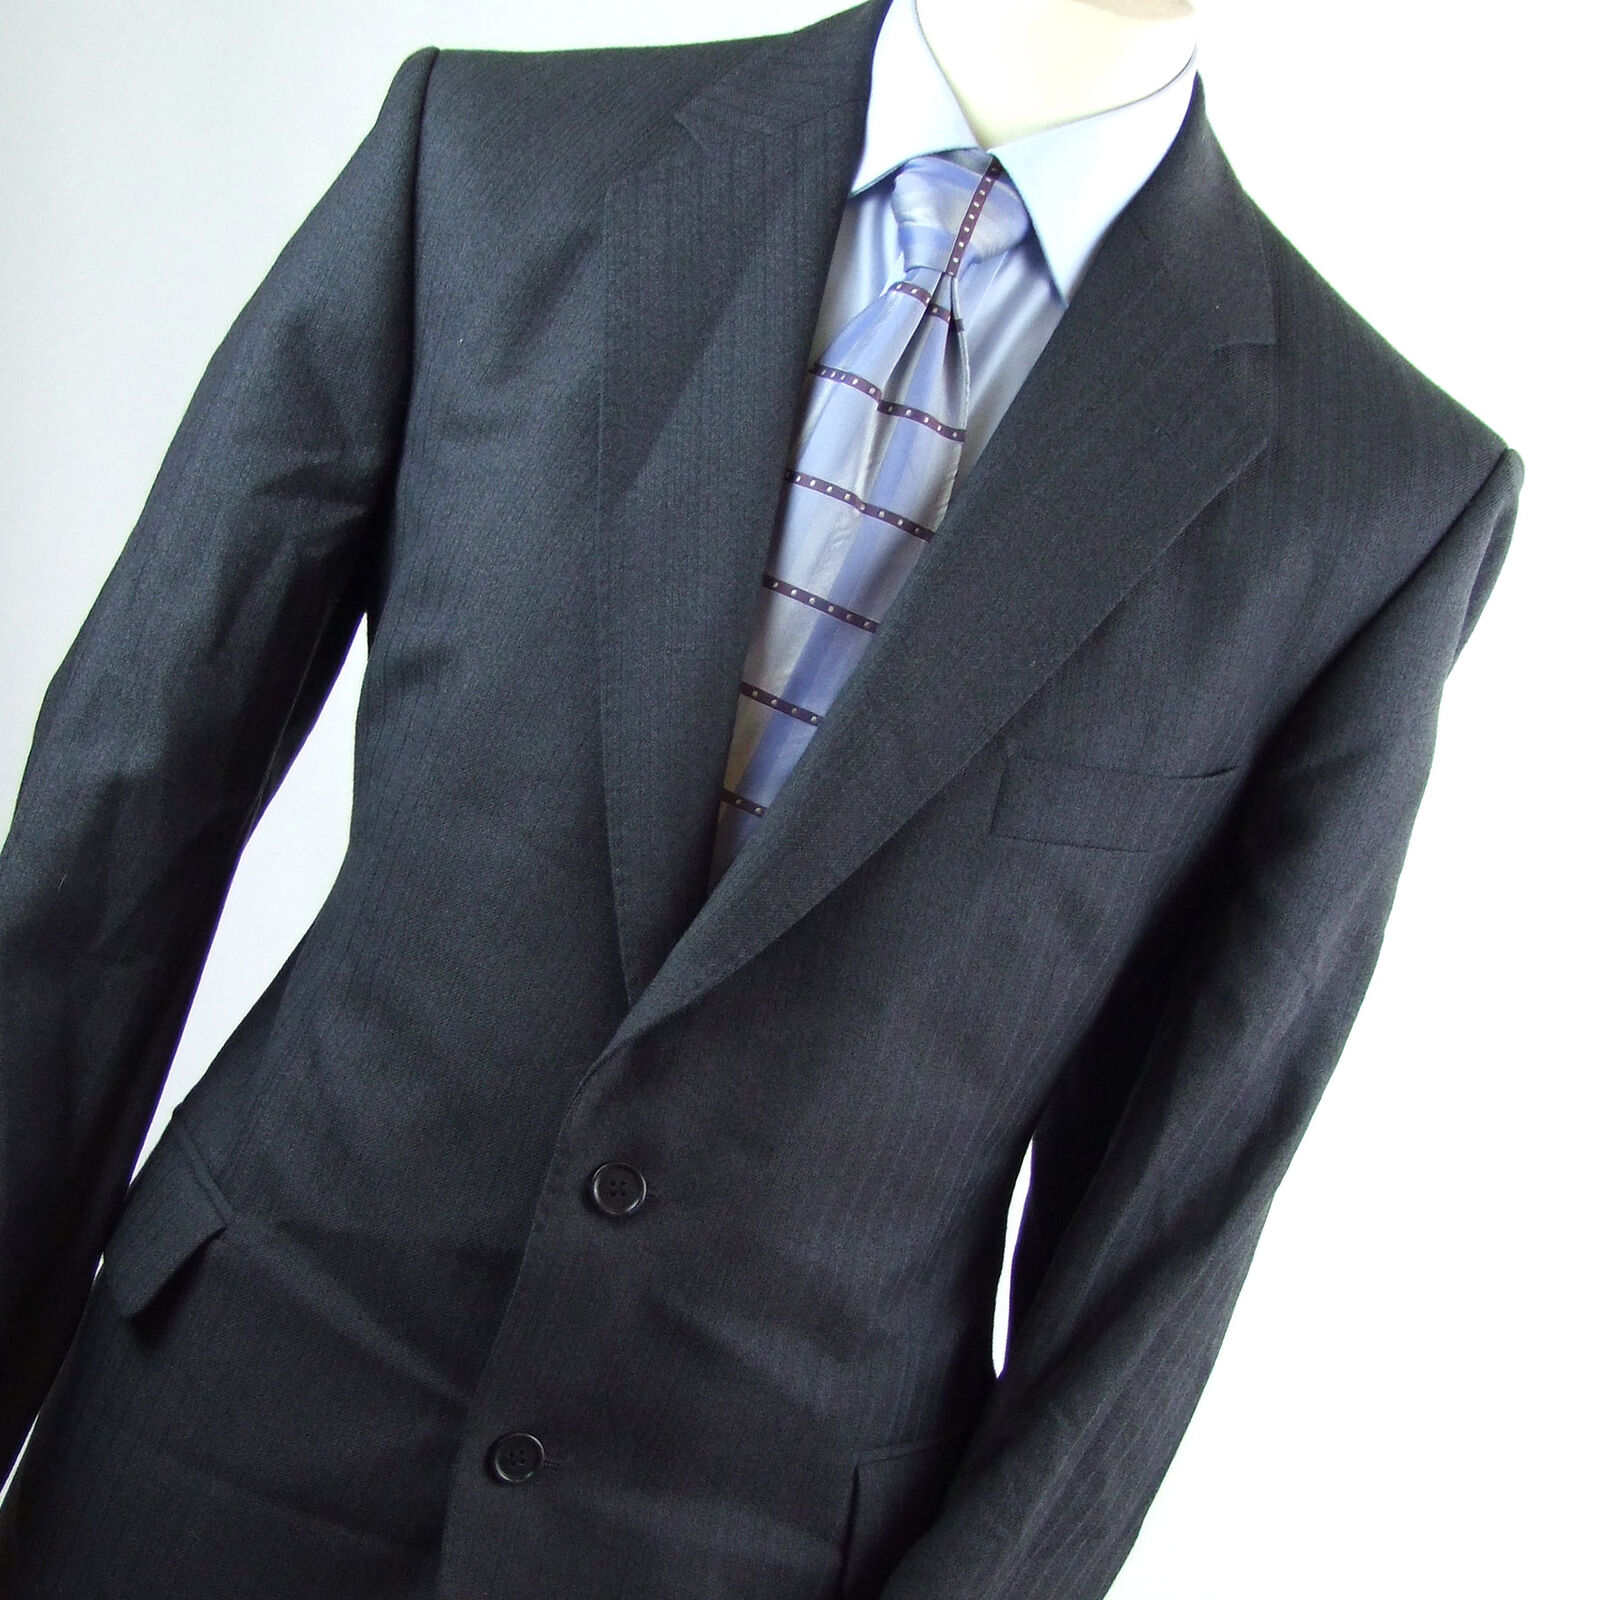 Magee Mens bluee Striped Wool Single Breasted Suit 44 40 (Short)